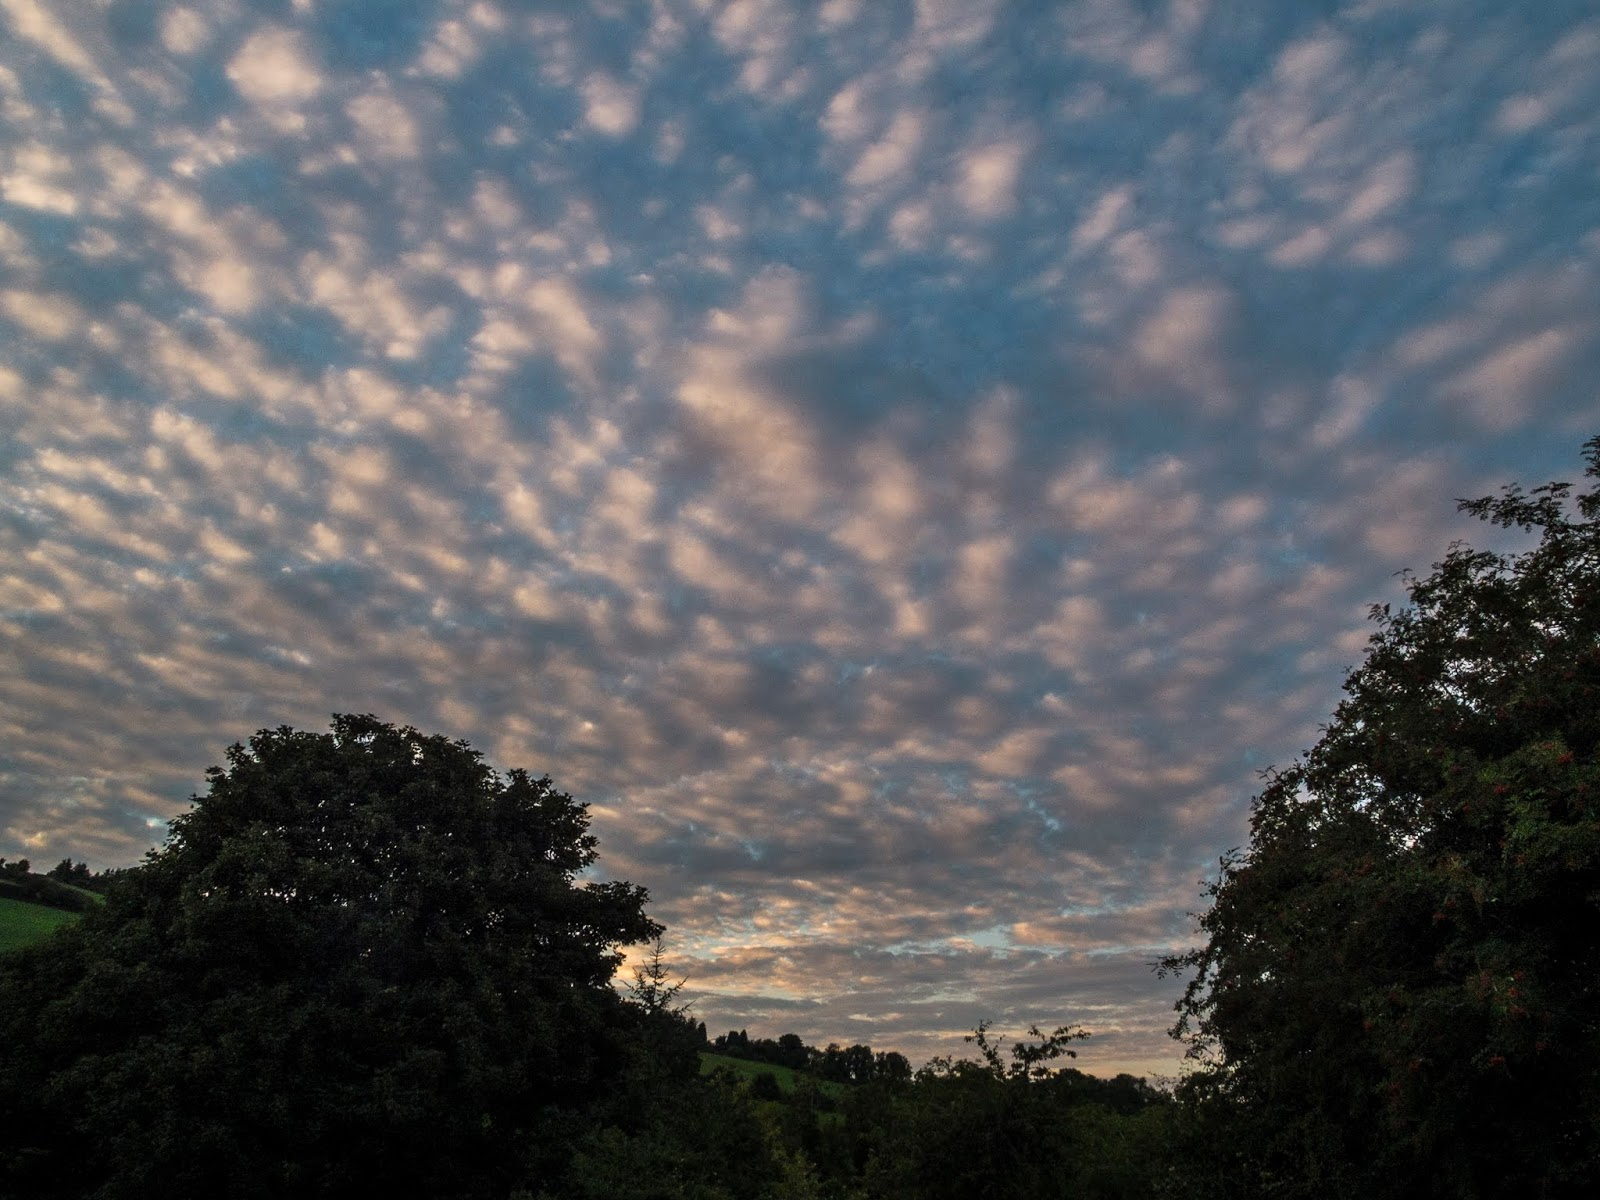 Stratocumulus sunset clouds down a valley between trees.